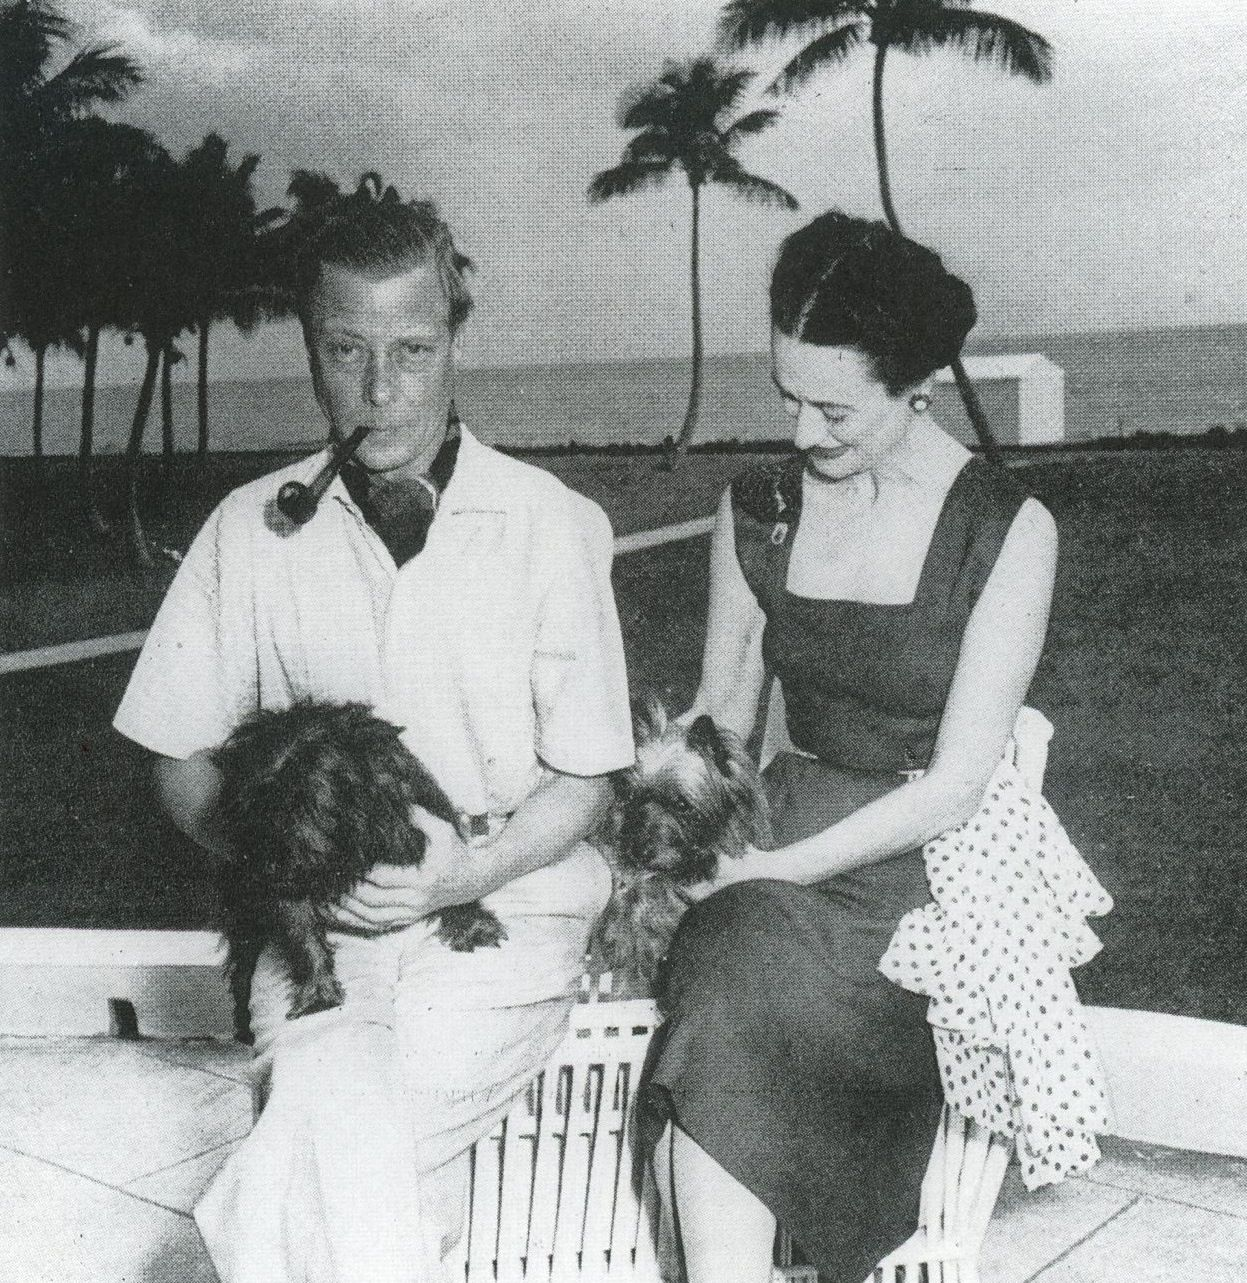 Duke & Duchess of Windsor-Palm Beach Yet even when she accepted an invitation to stay at the Belvedere Fort for a week without Ernest, she still believed she could string both men along.